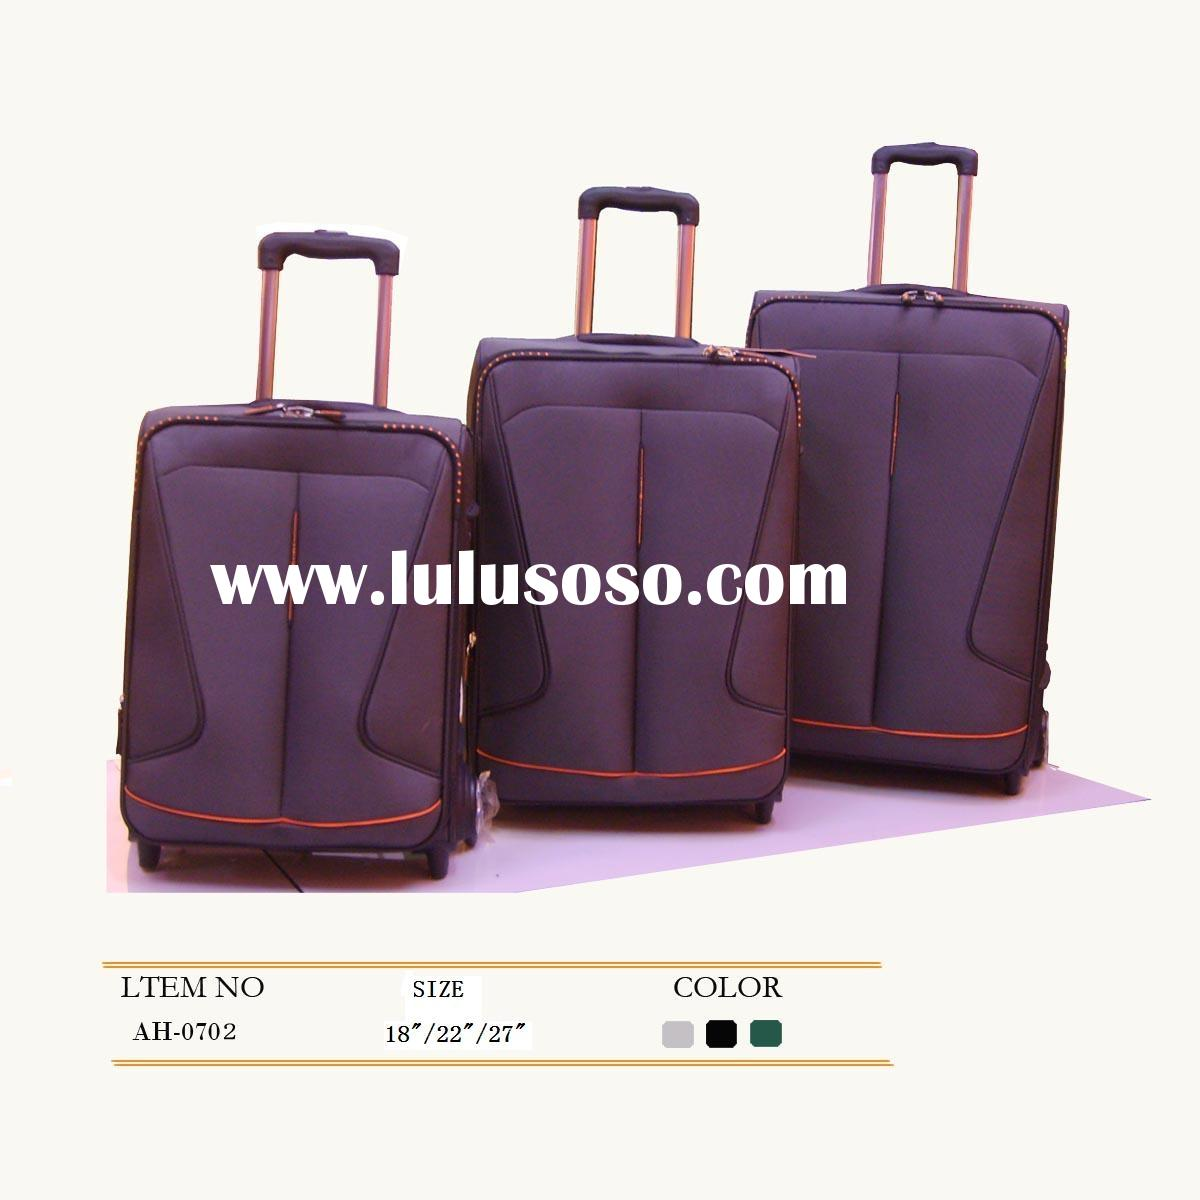 1 luggage set/luggage/trolley case/roller case/travel case/luggage upright